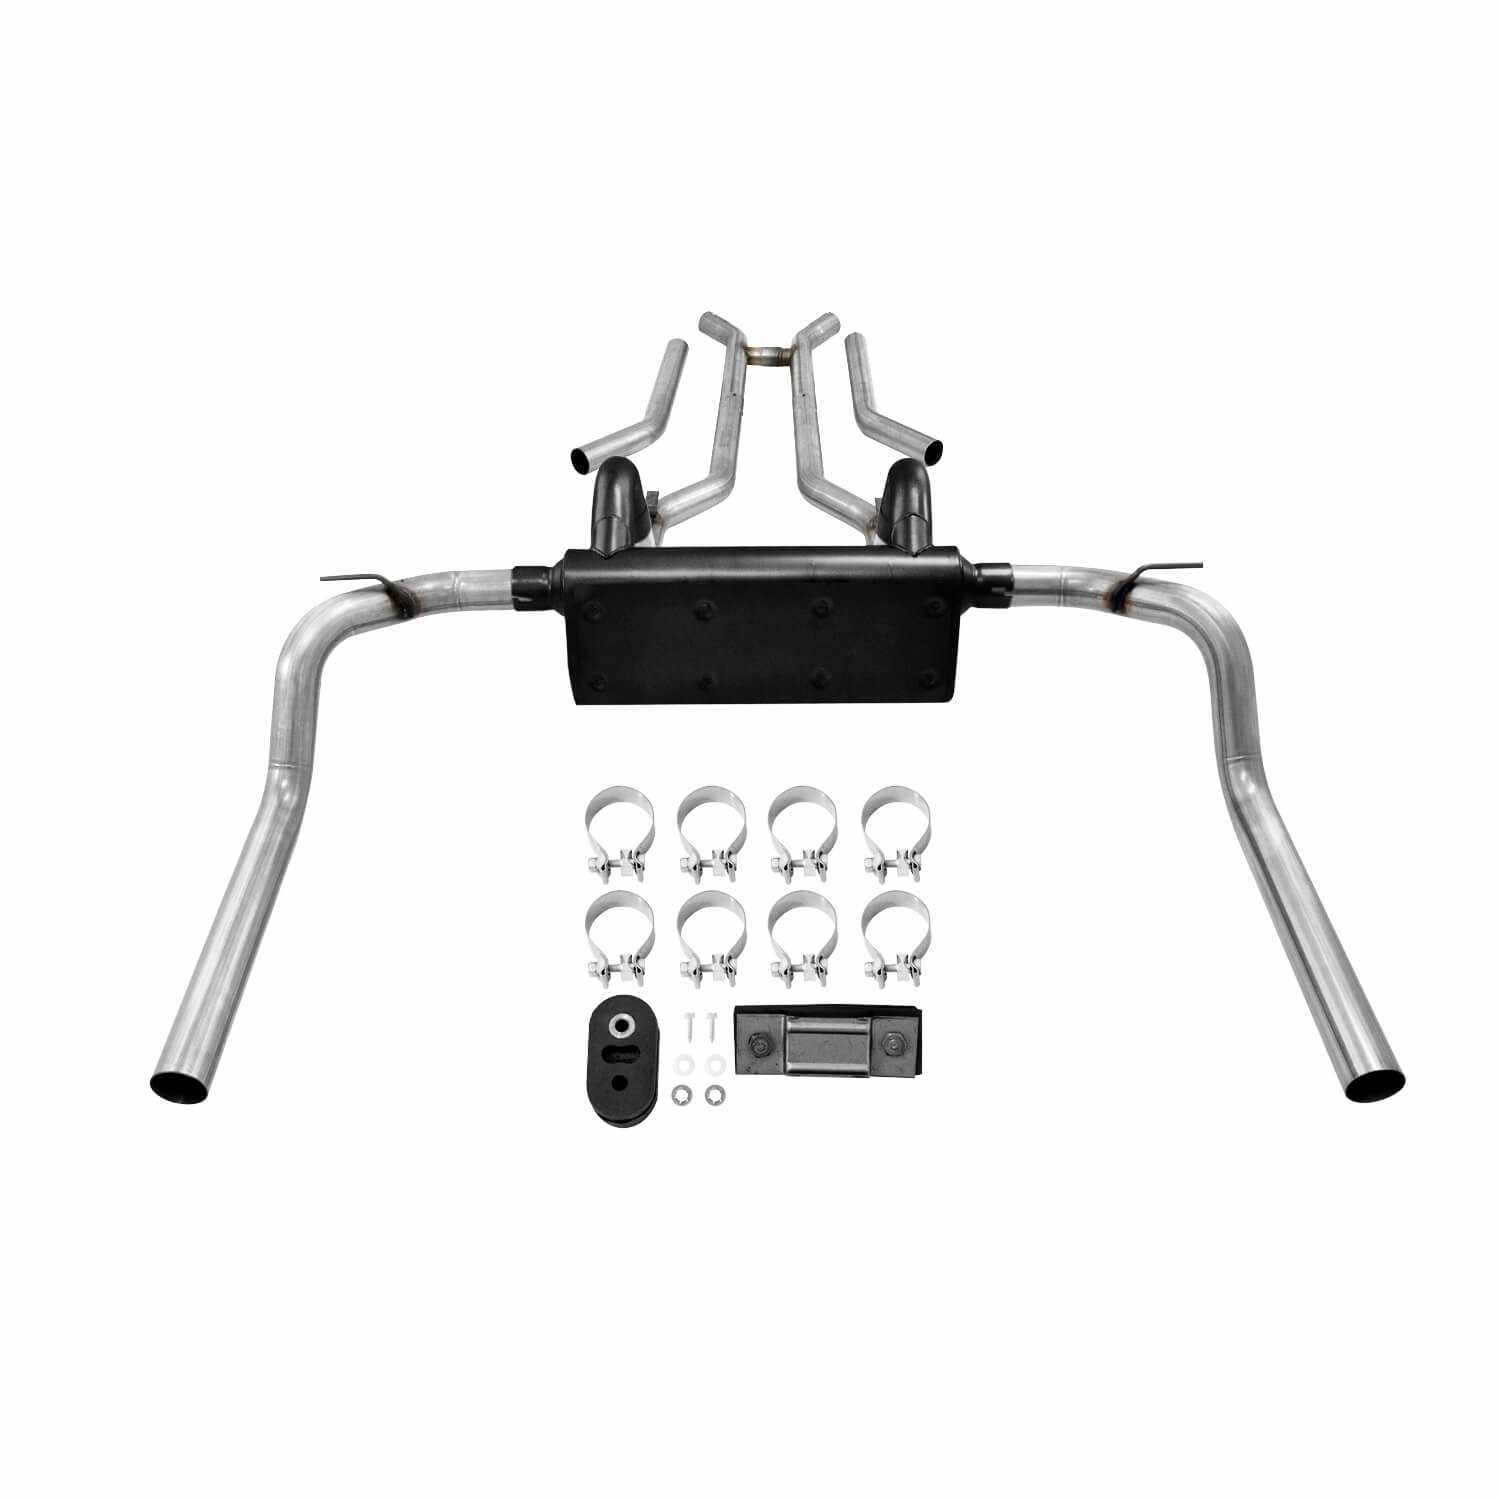 817104 Flowmaster American Thunder Header Back Exhaust System